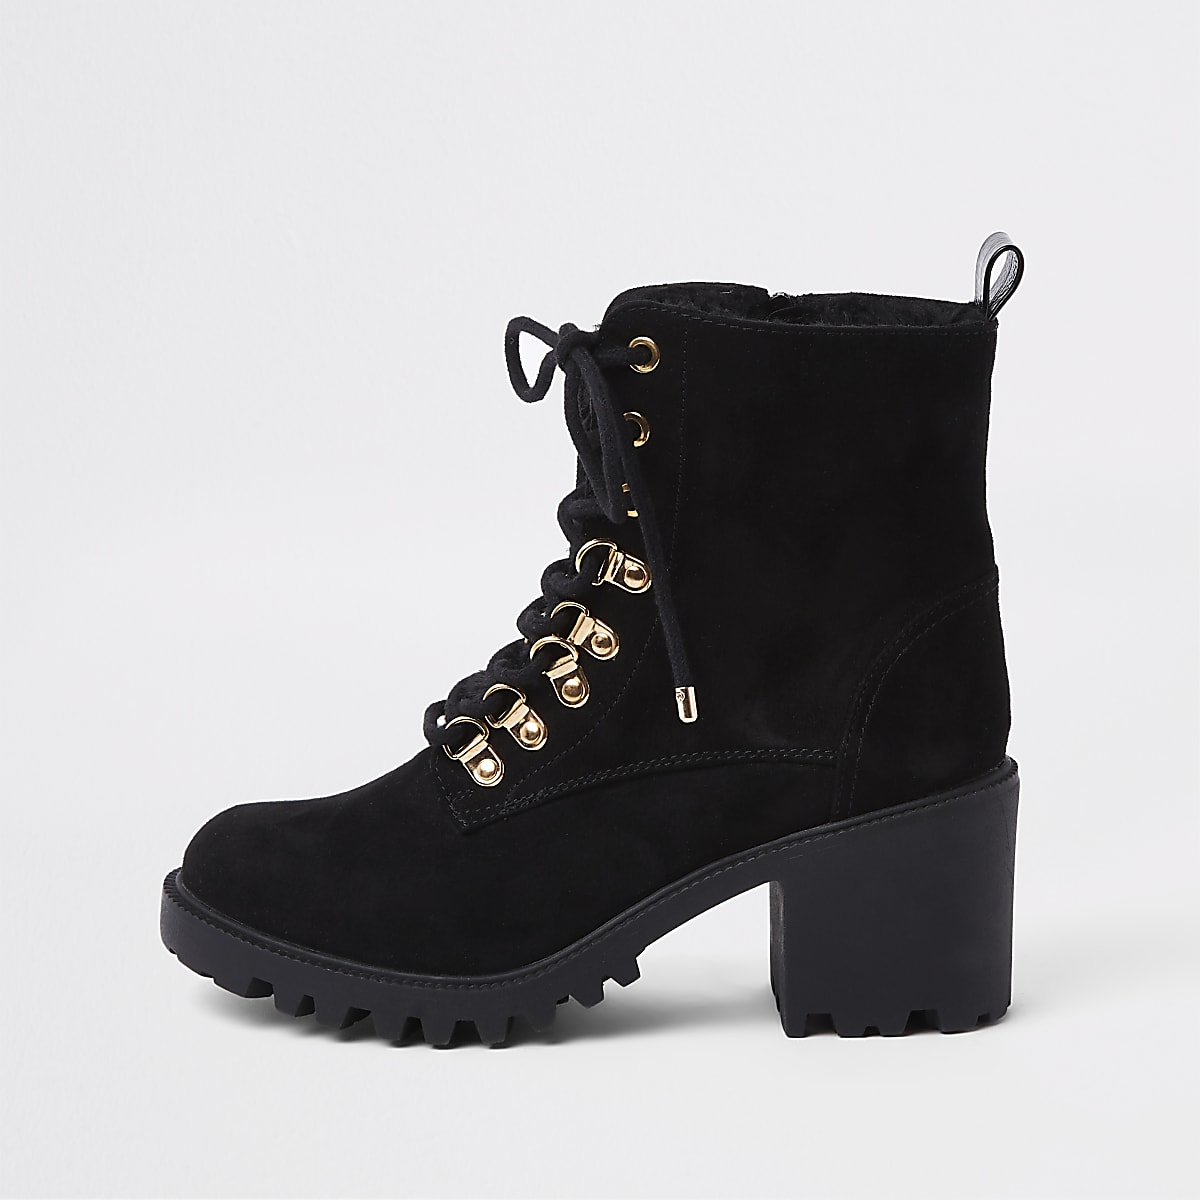 2077a1d95cc2b Black faux fur lace-up chunky hiking boots - Boots - Shoes   Boots - women